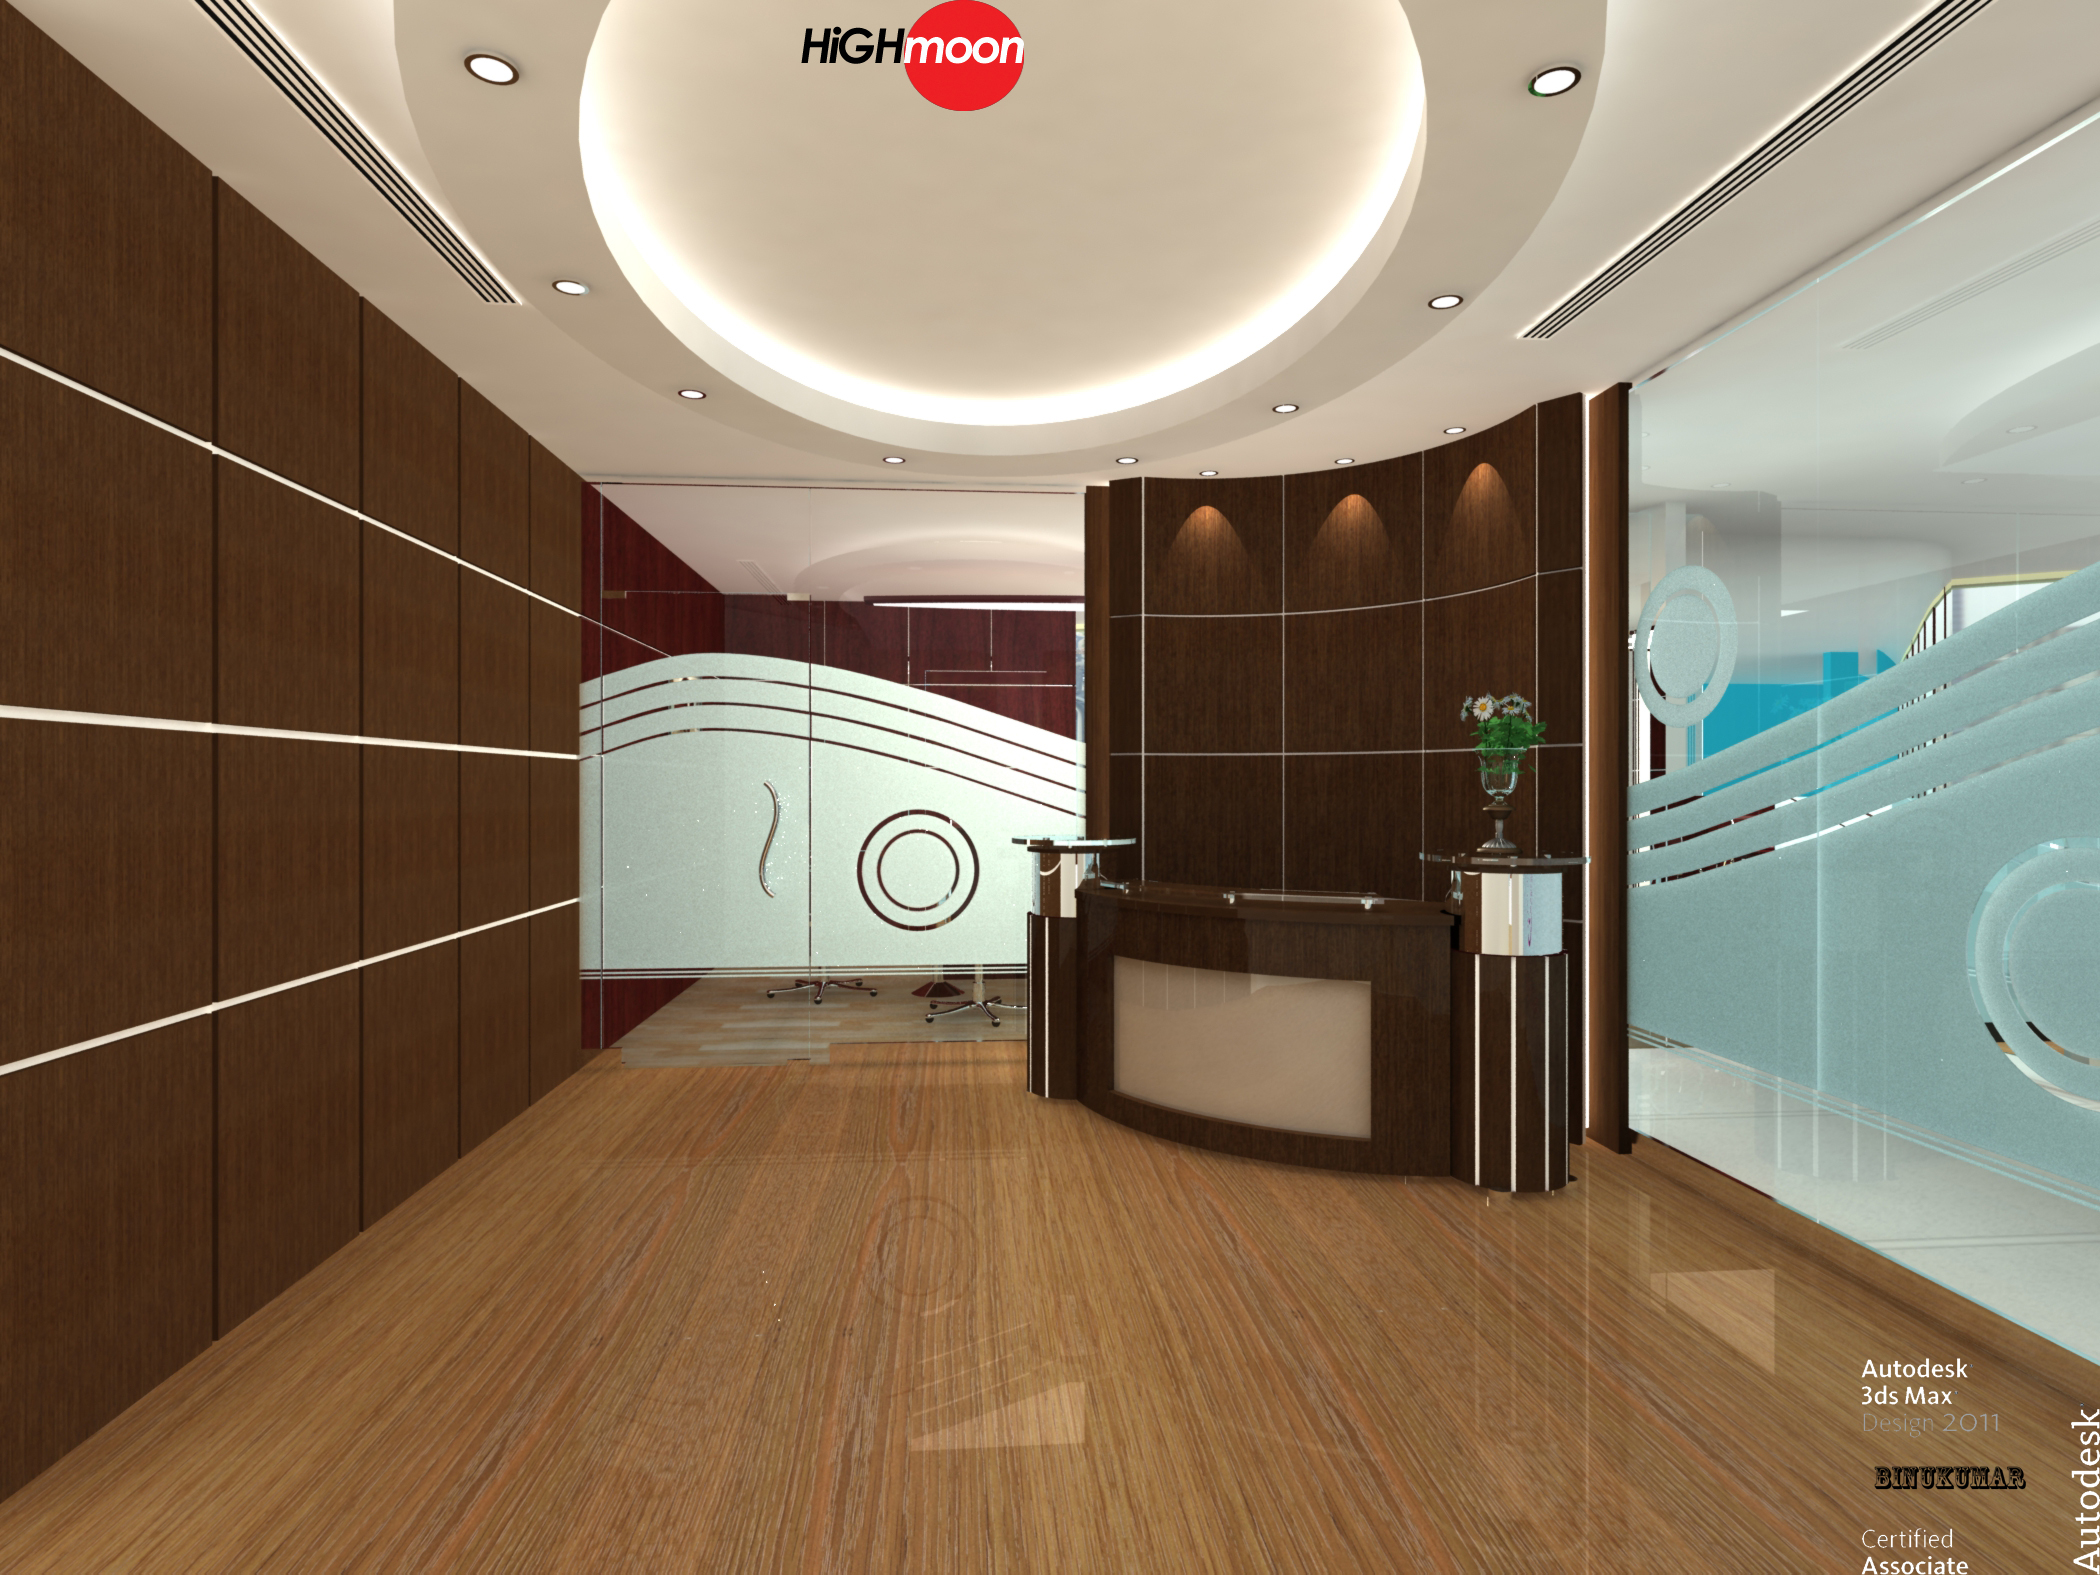 Interior false ceiling team all about interiors for Home interior design company